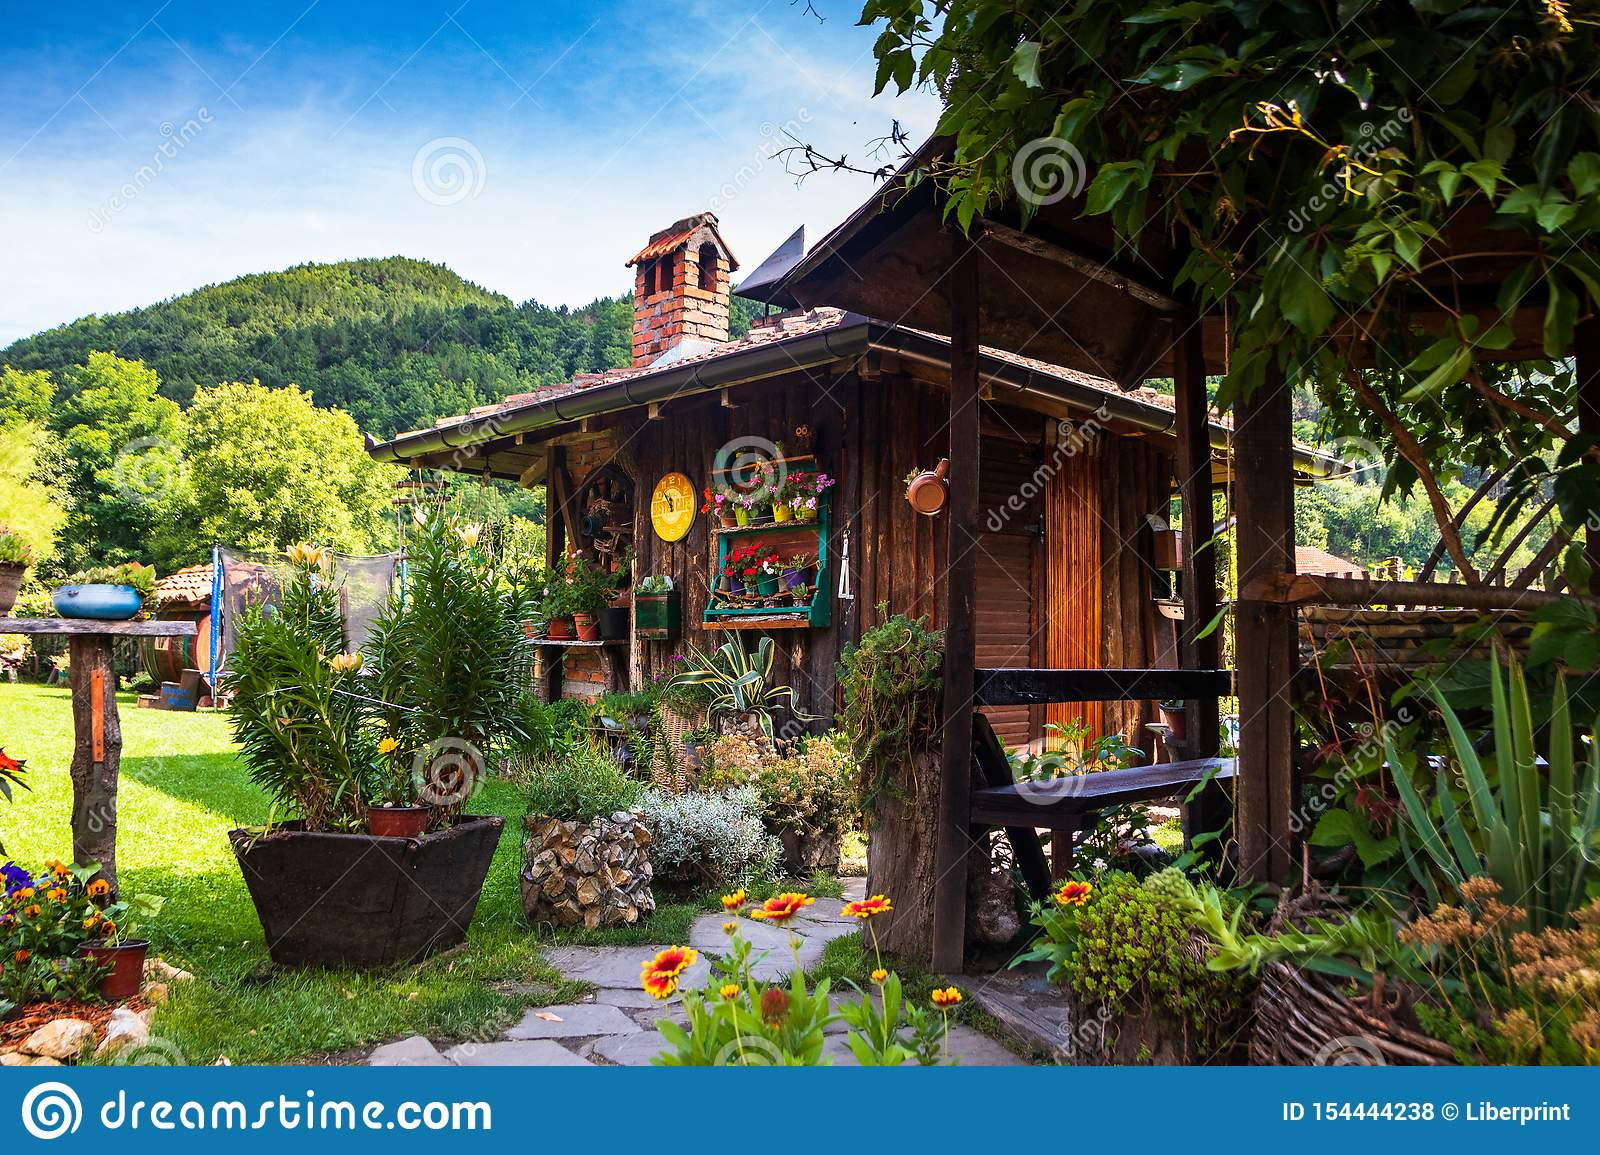 Restaurant In A Vintage Yard With Wooden House Beautiful Garden